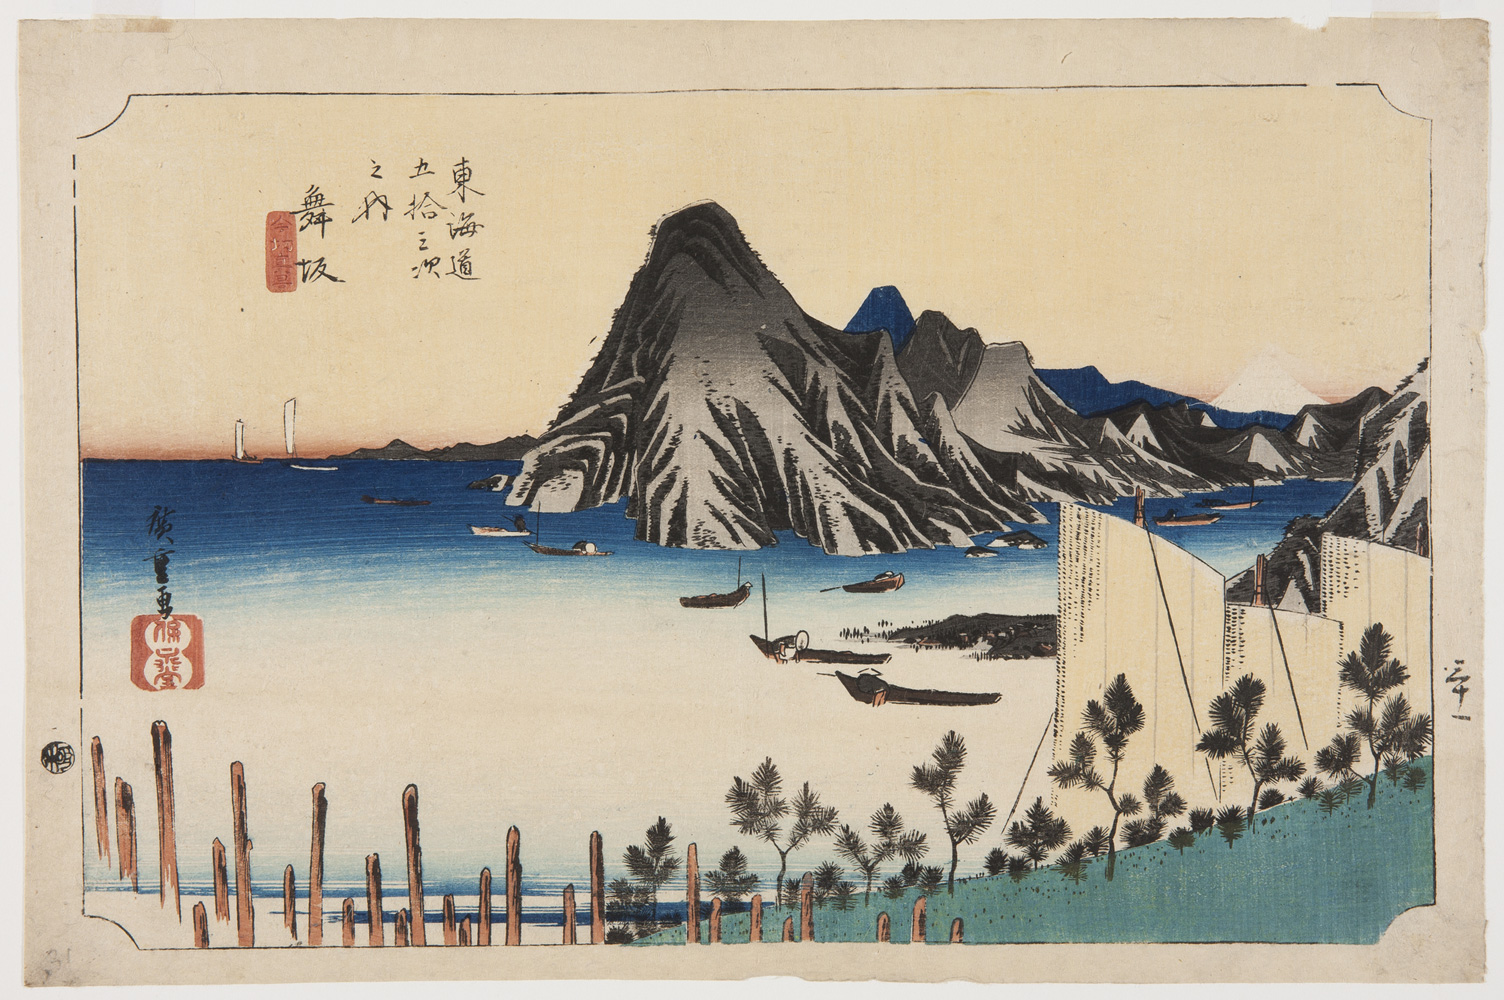 A Japanese print of a landscpe. Small boats on the water with mountainous land in the background.